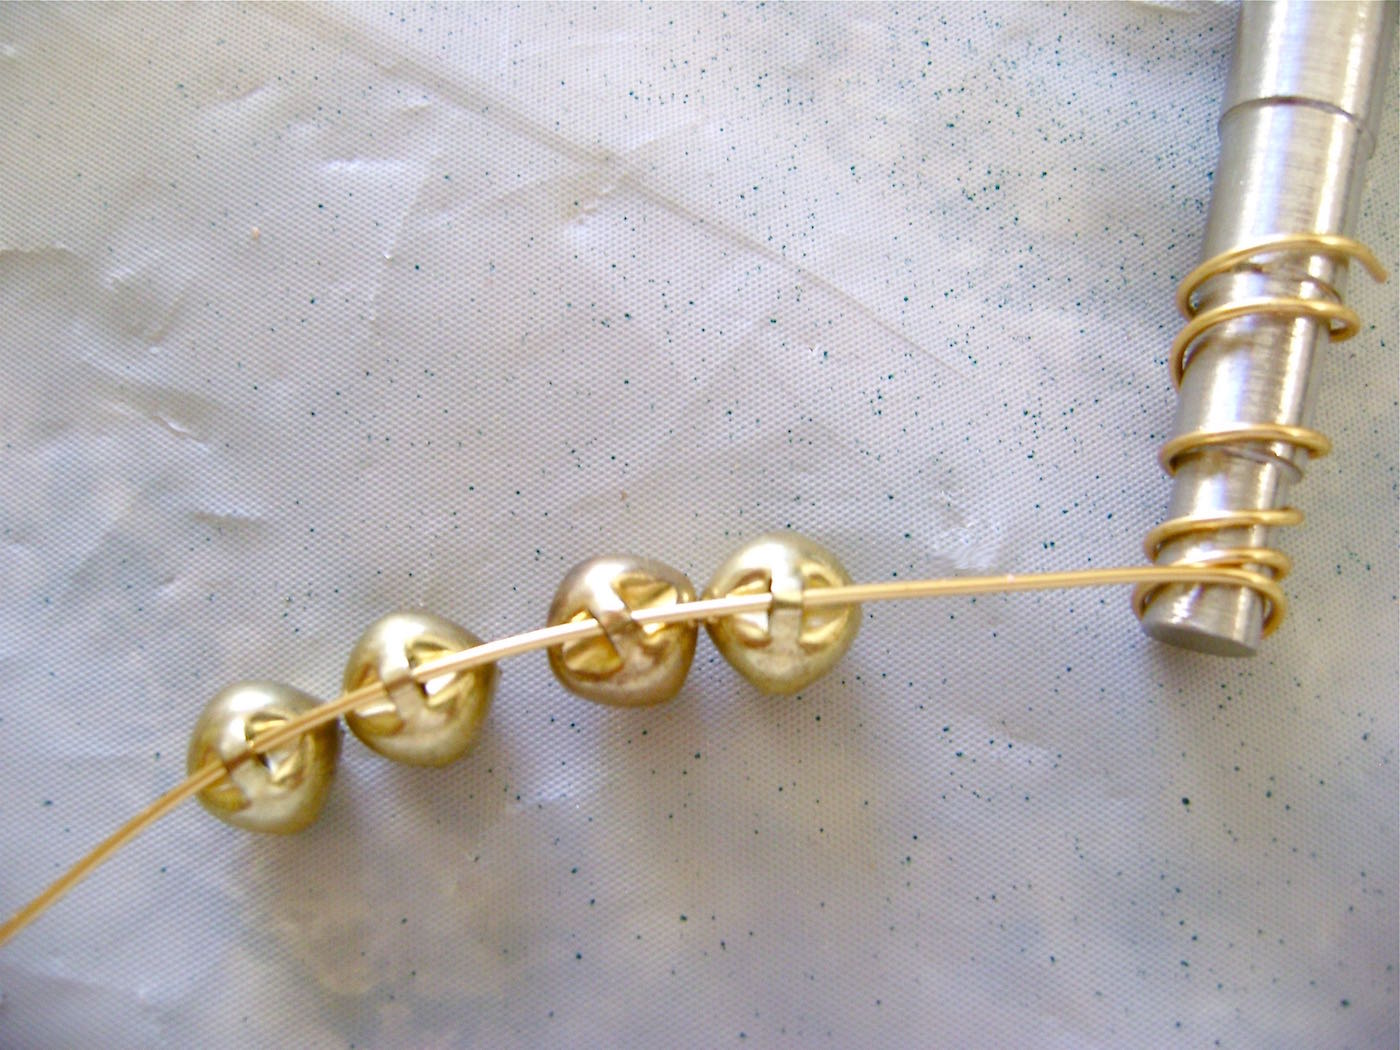 step 12 - To create the decorative bell feature at the top, wrap gold wire around a small round object like a pen or screw driver, 4 or 5 times. Slip the wire off. Leave a tail of about three inches and add the tiny bells.